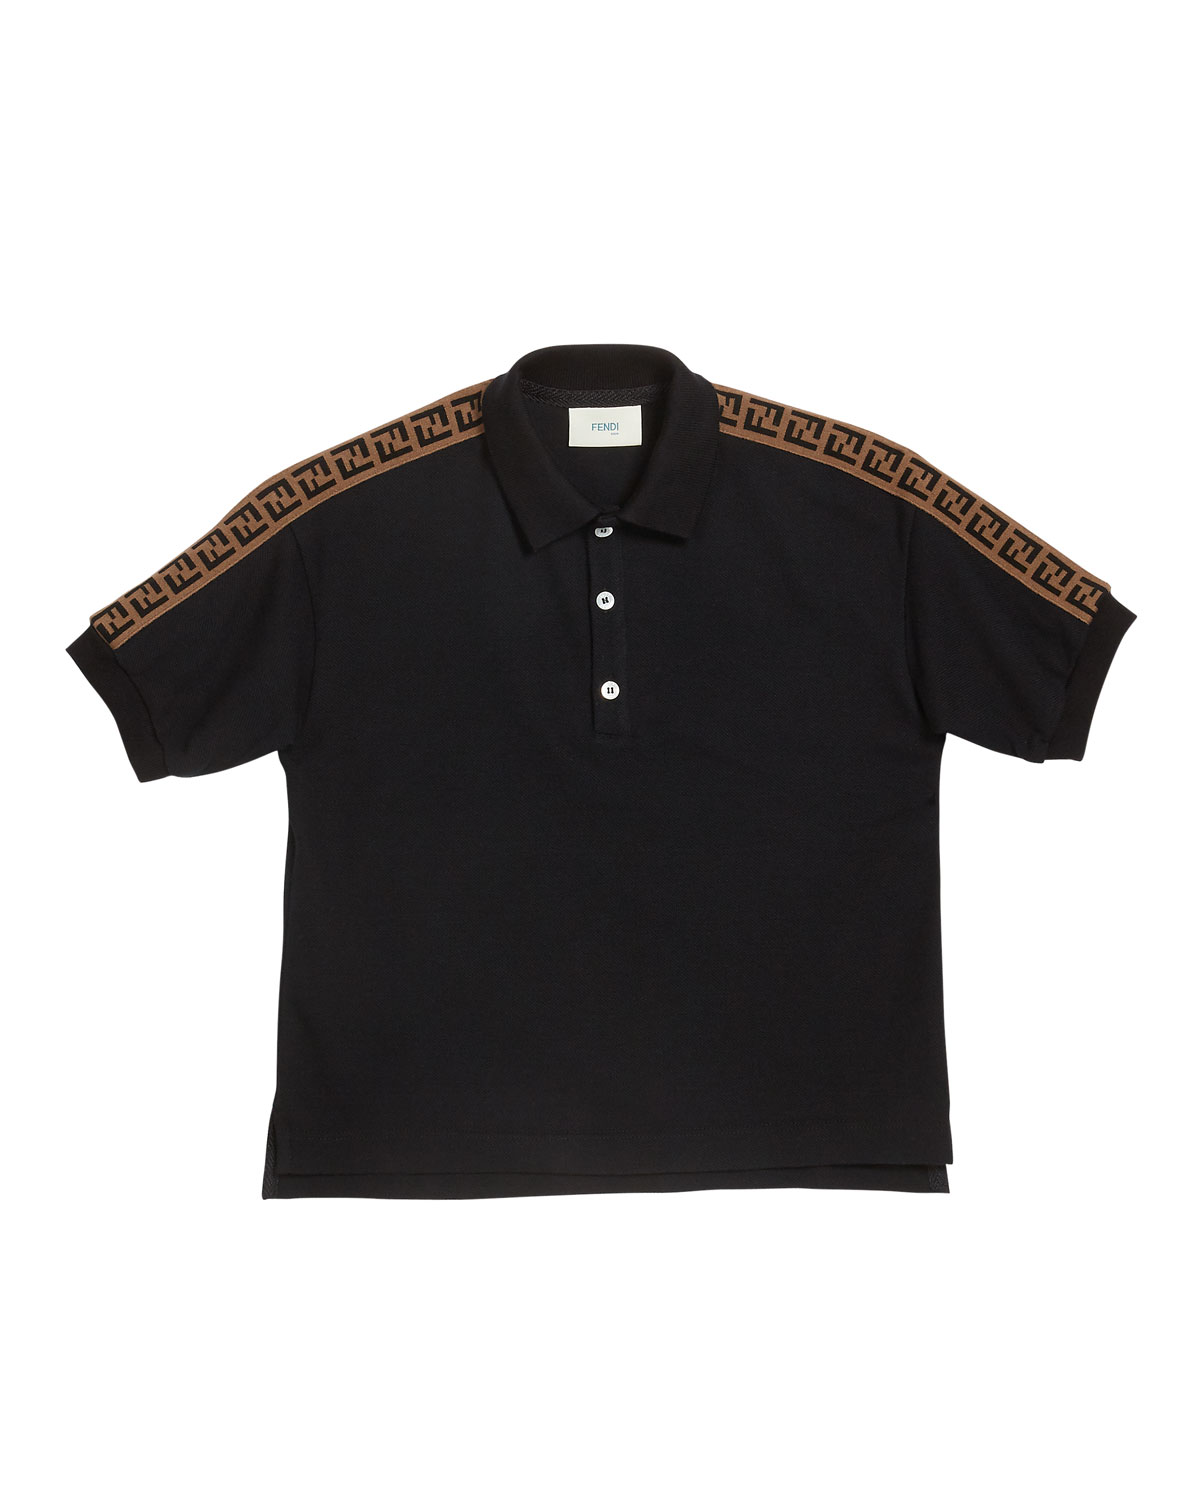 Fendi BOY'S LOGO TRIM POLO SHIRT